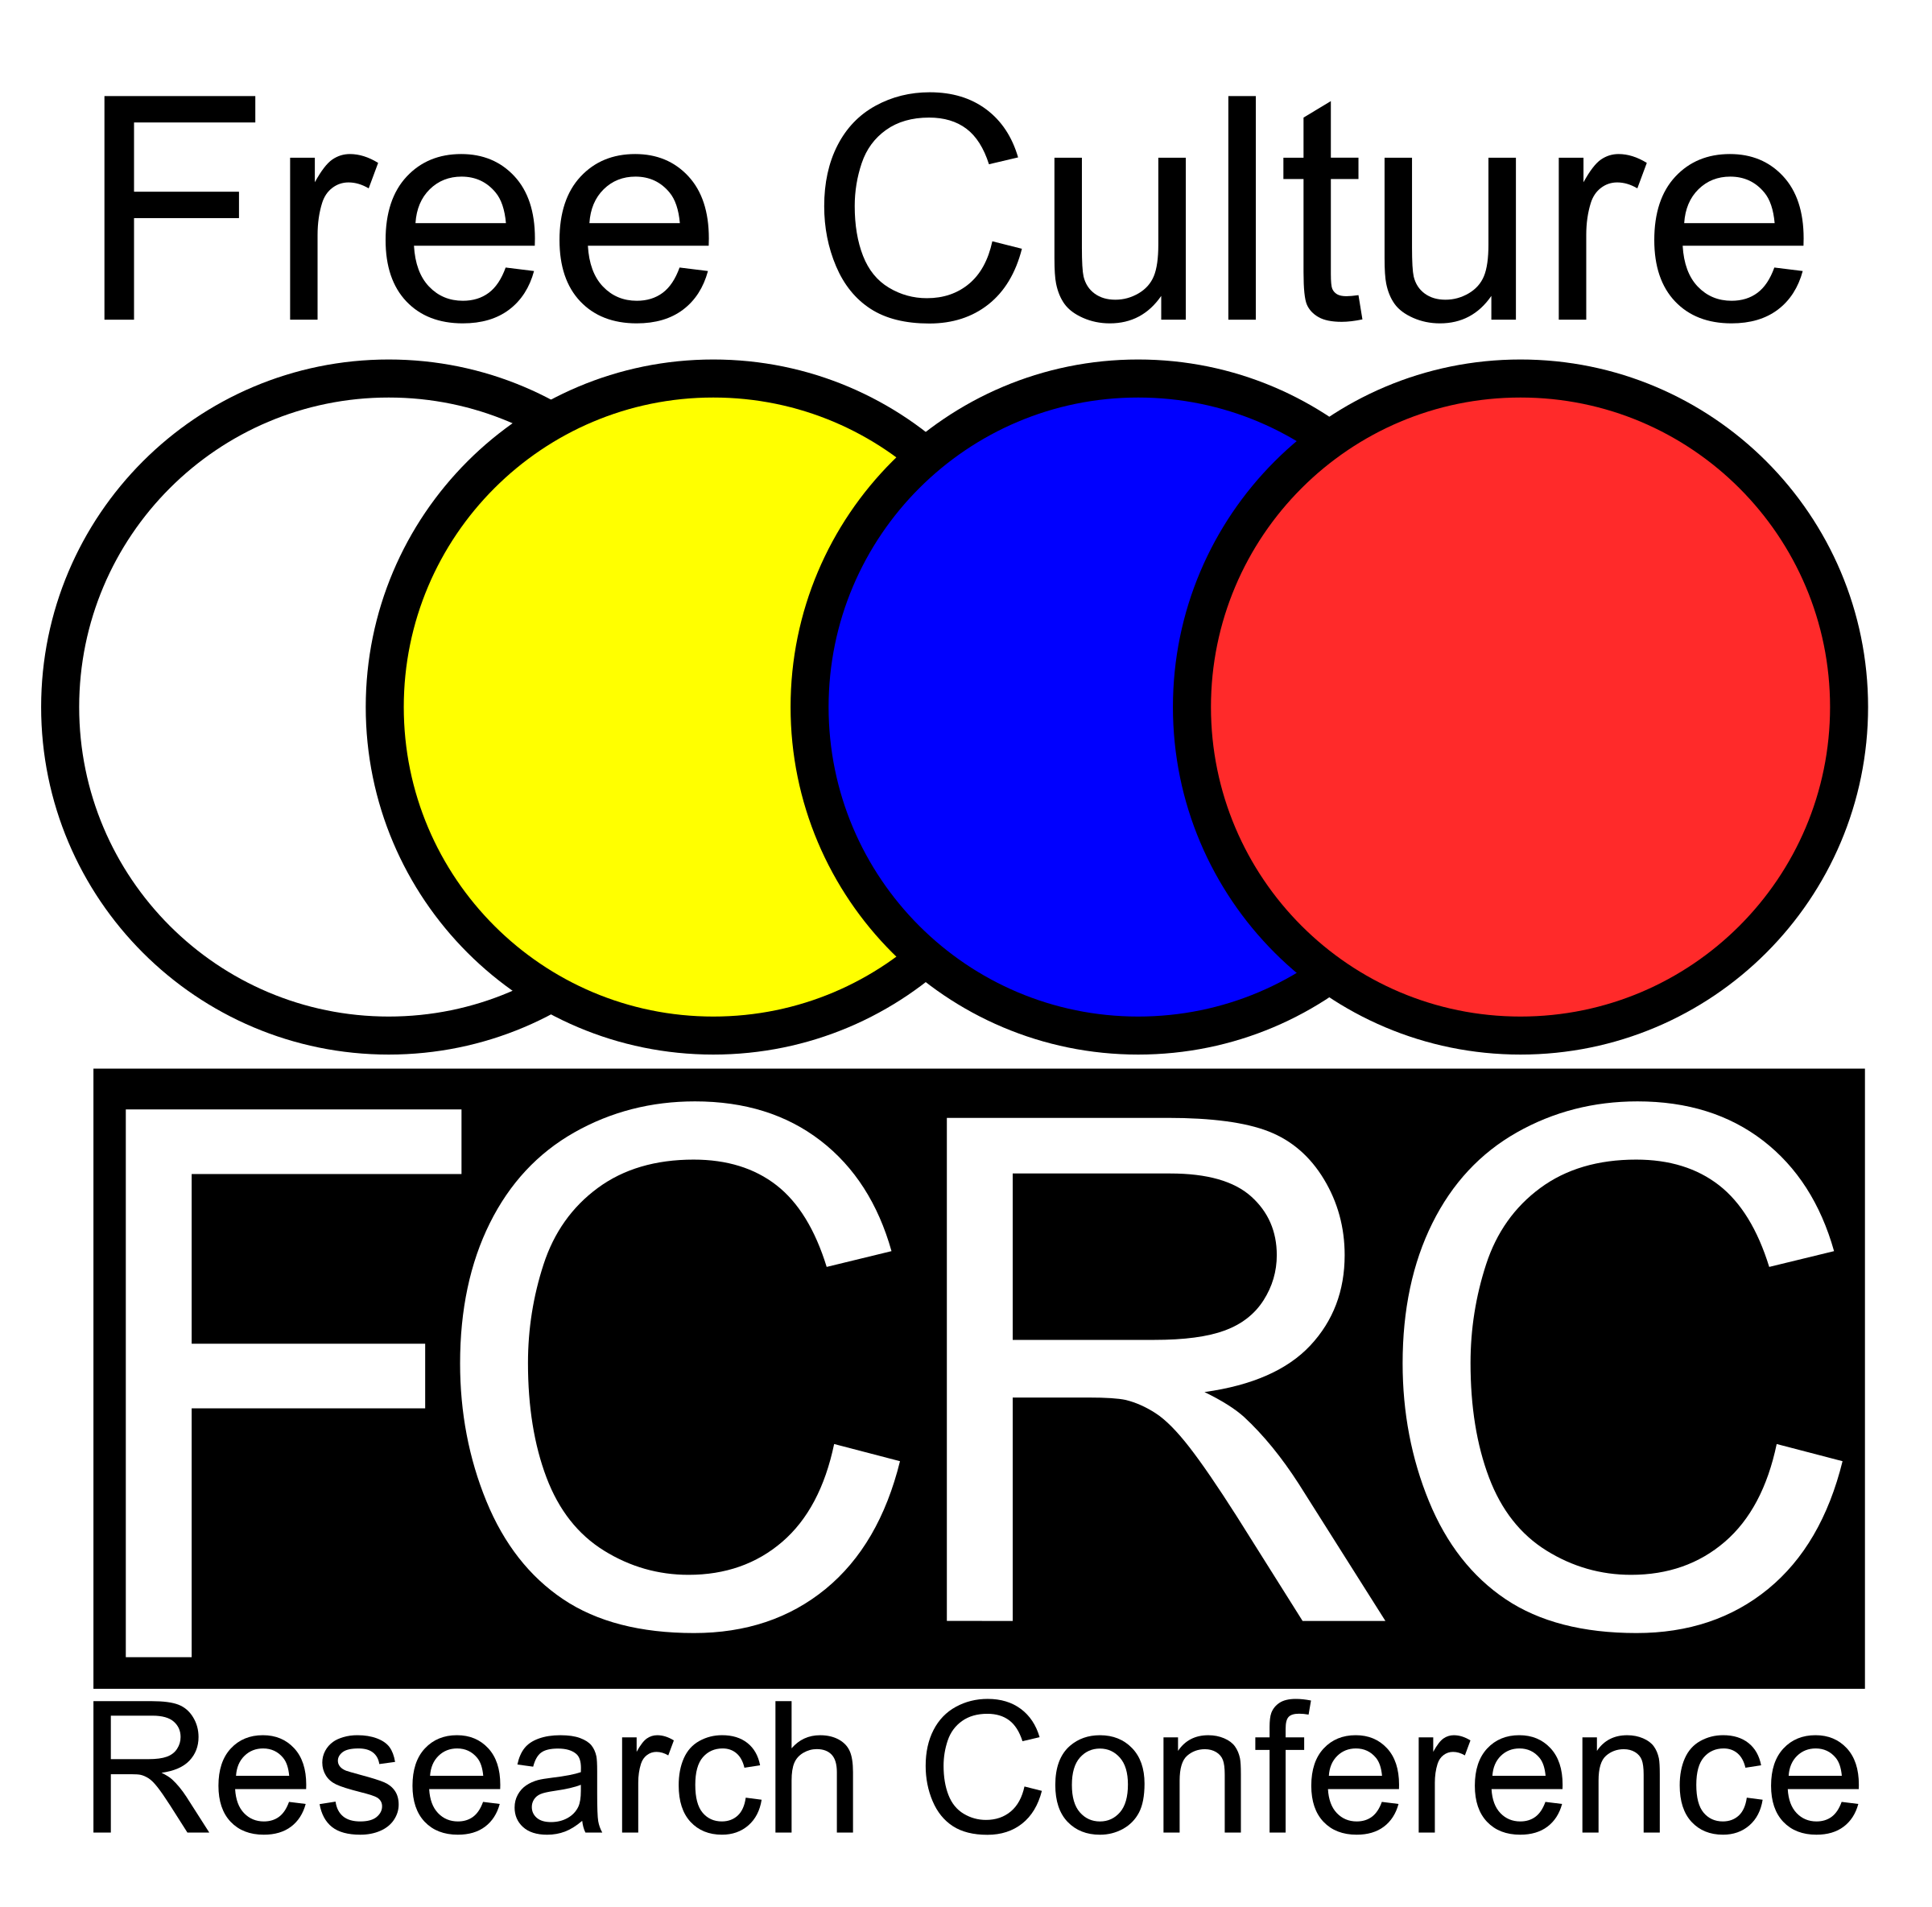 FCRC LOGO by aungkarns